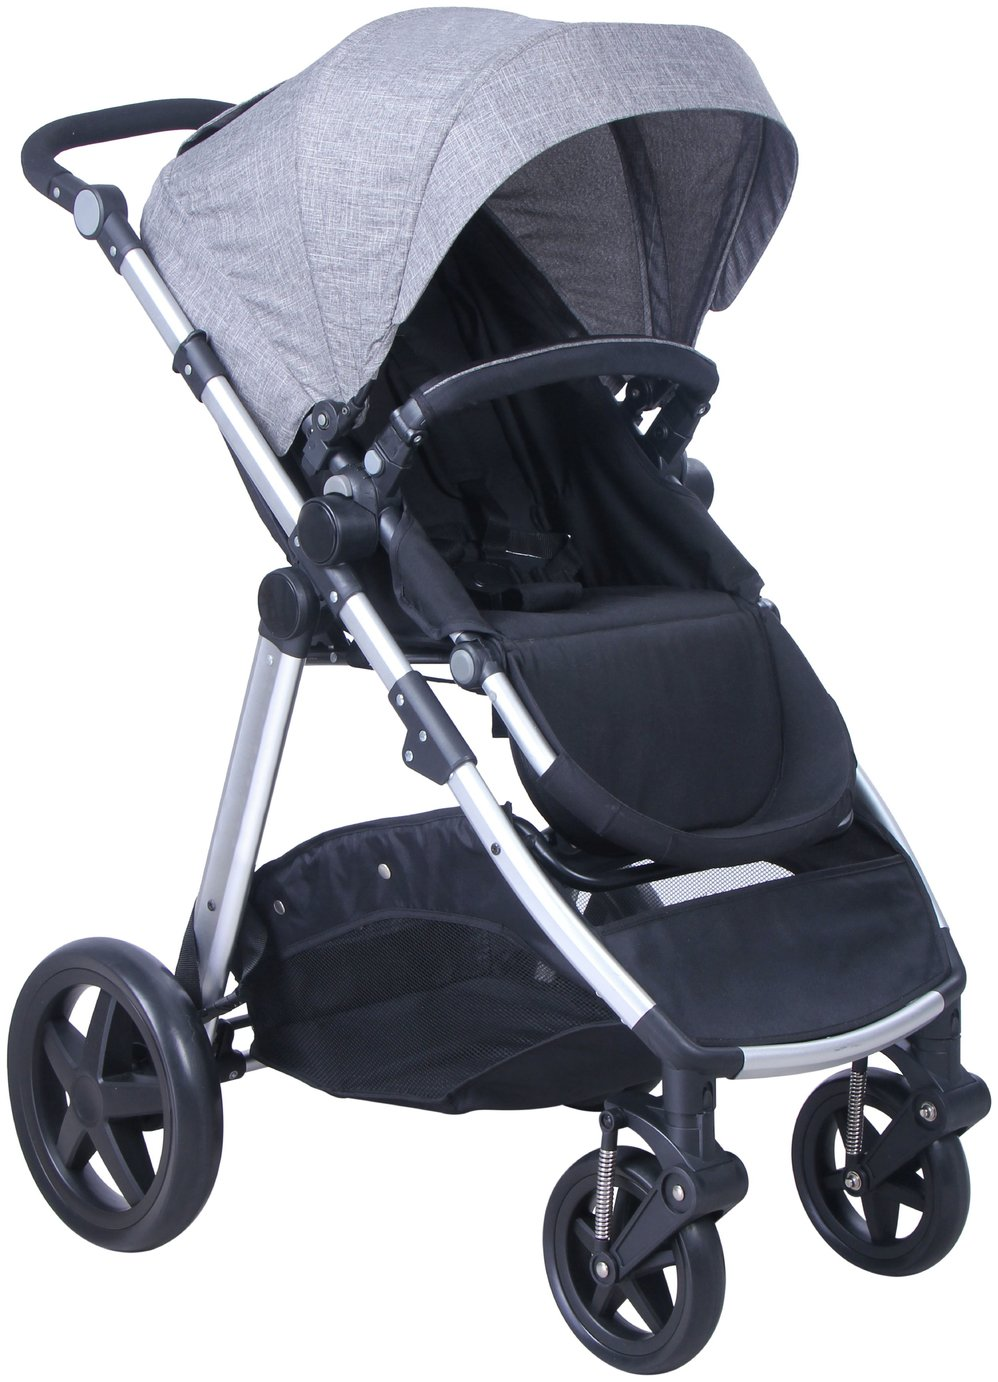 Image of Cuggl Beech Pushchair